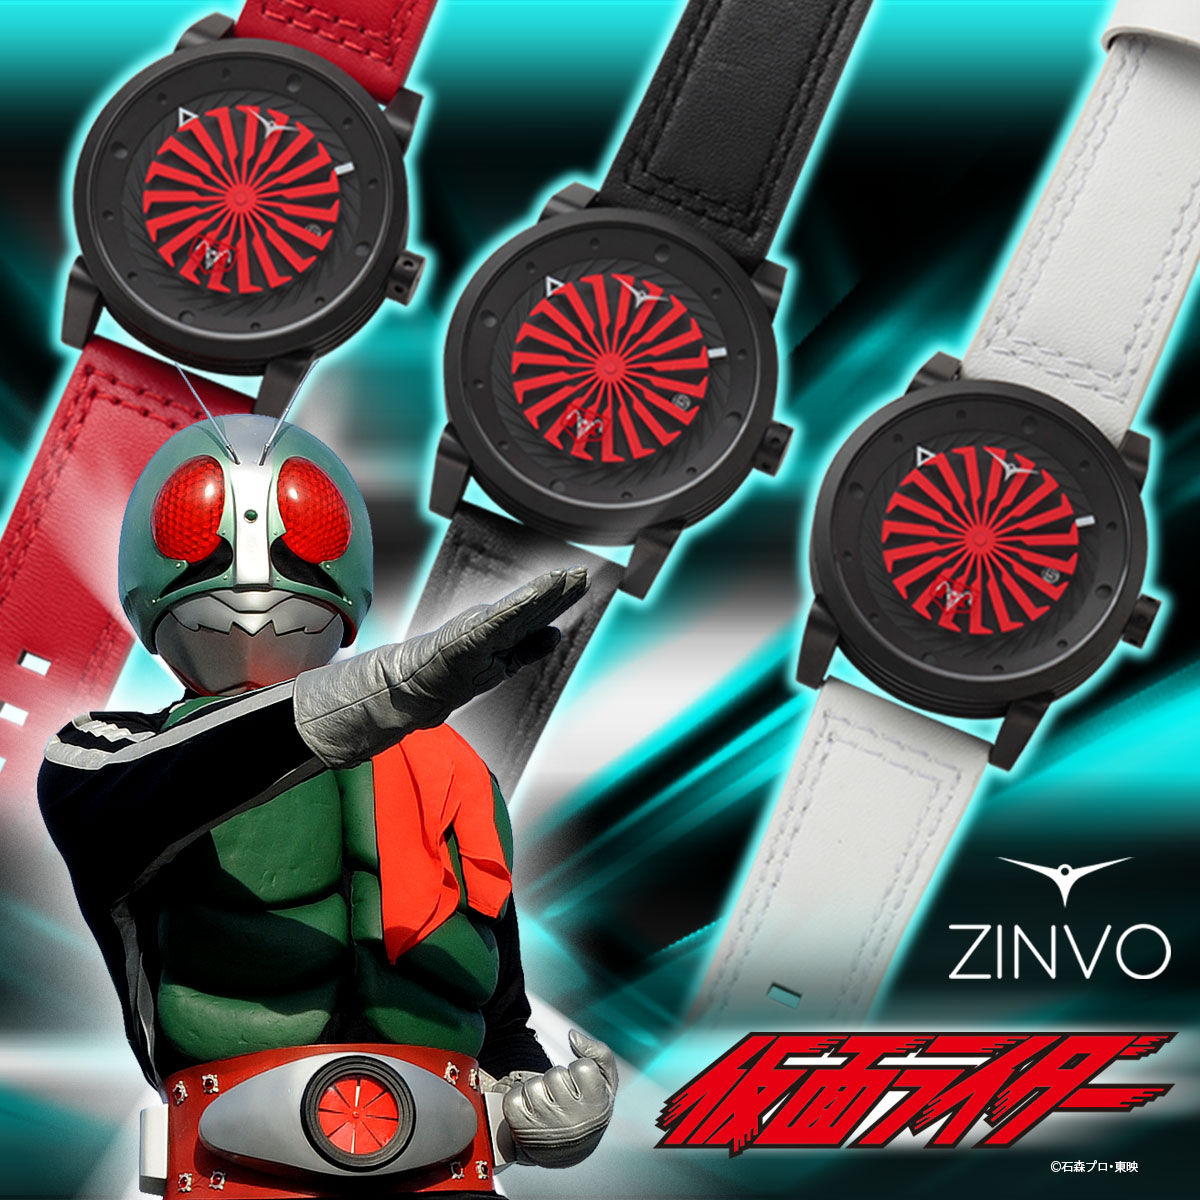 Watch—Kamen Rider/ZINVO Collaboration